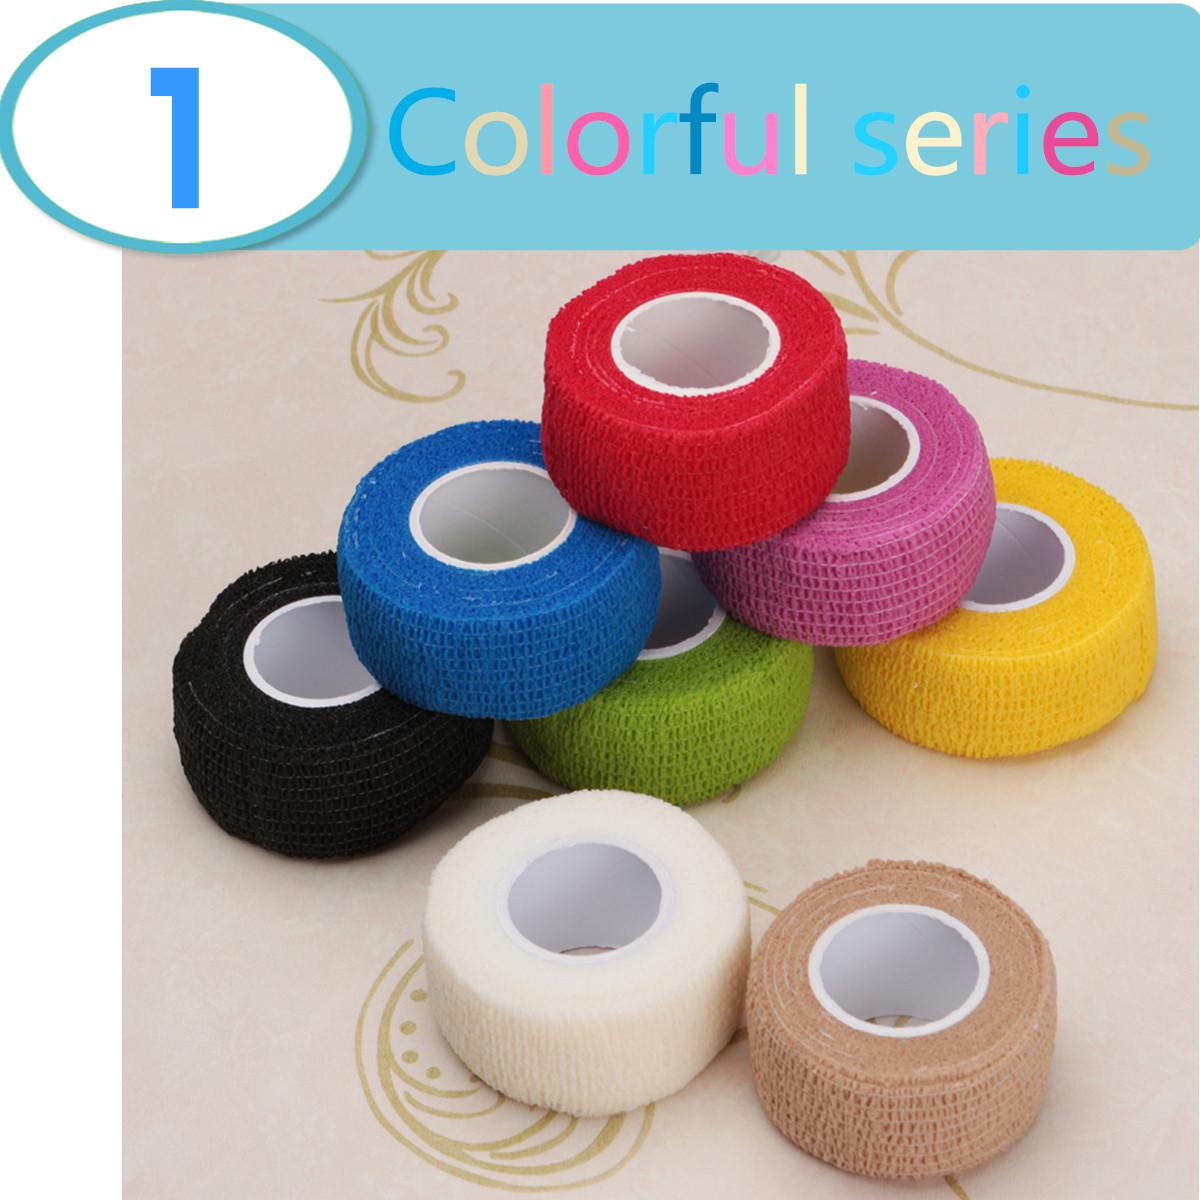 Safurance 2.5cm*5m Colorized Therapeutic Elastic Tape Sports Physio Muscles Care Bandage First Aid Security Protection цена 2017